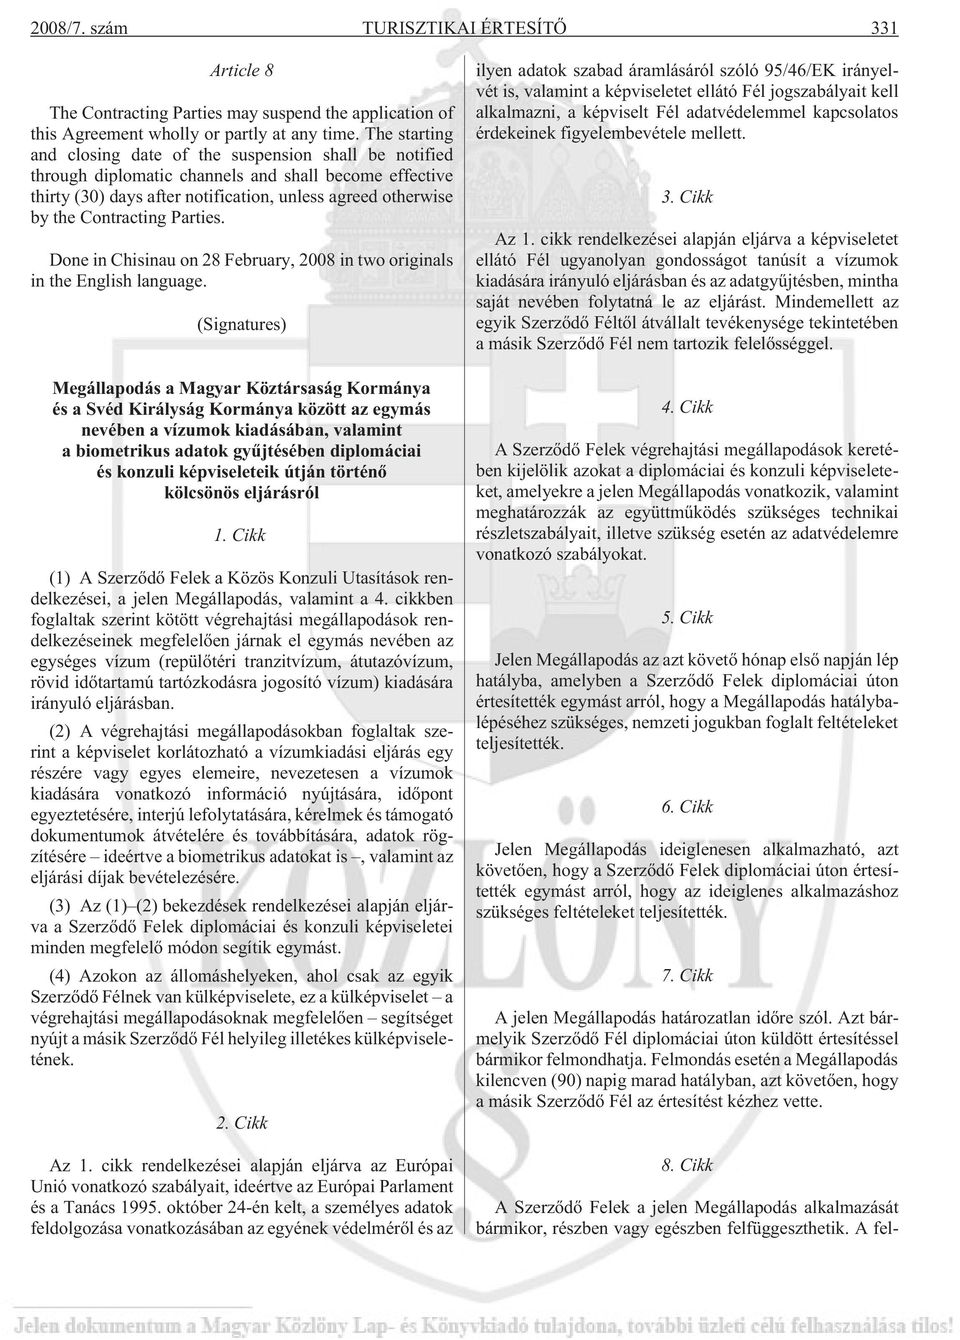 Contracting Parties. Done in Chisinau on 28 February, 2008 in two originals in the English language.